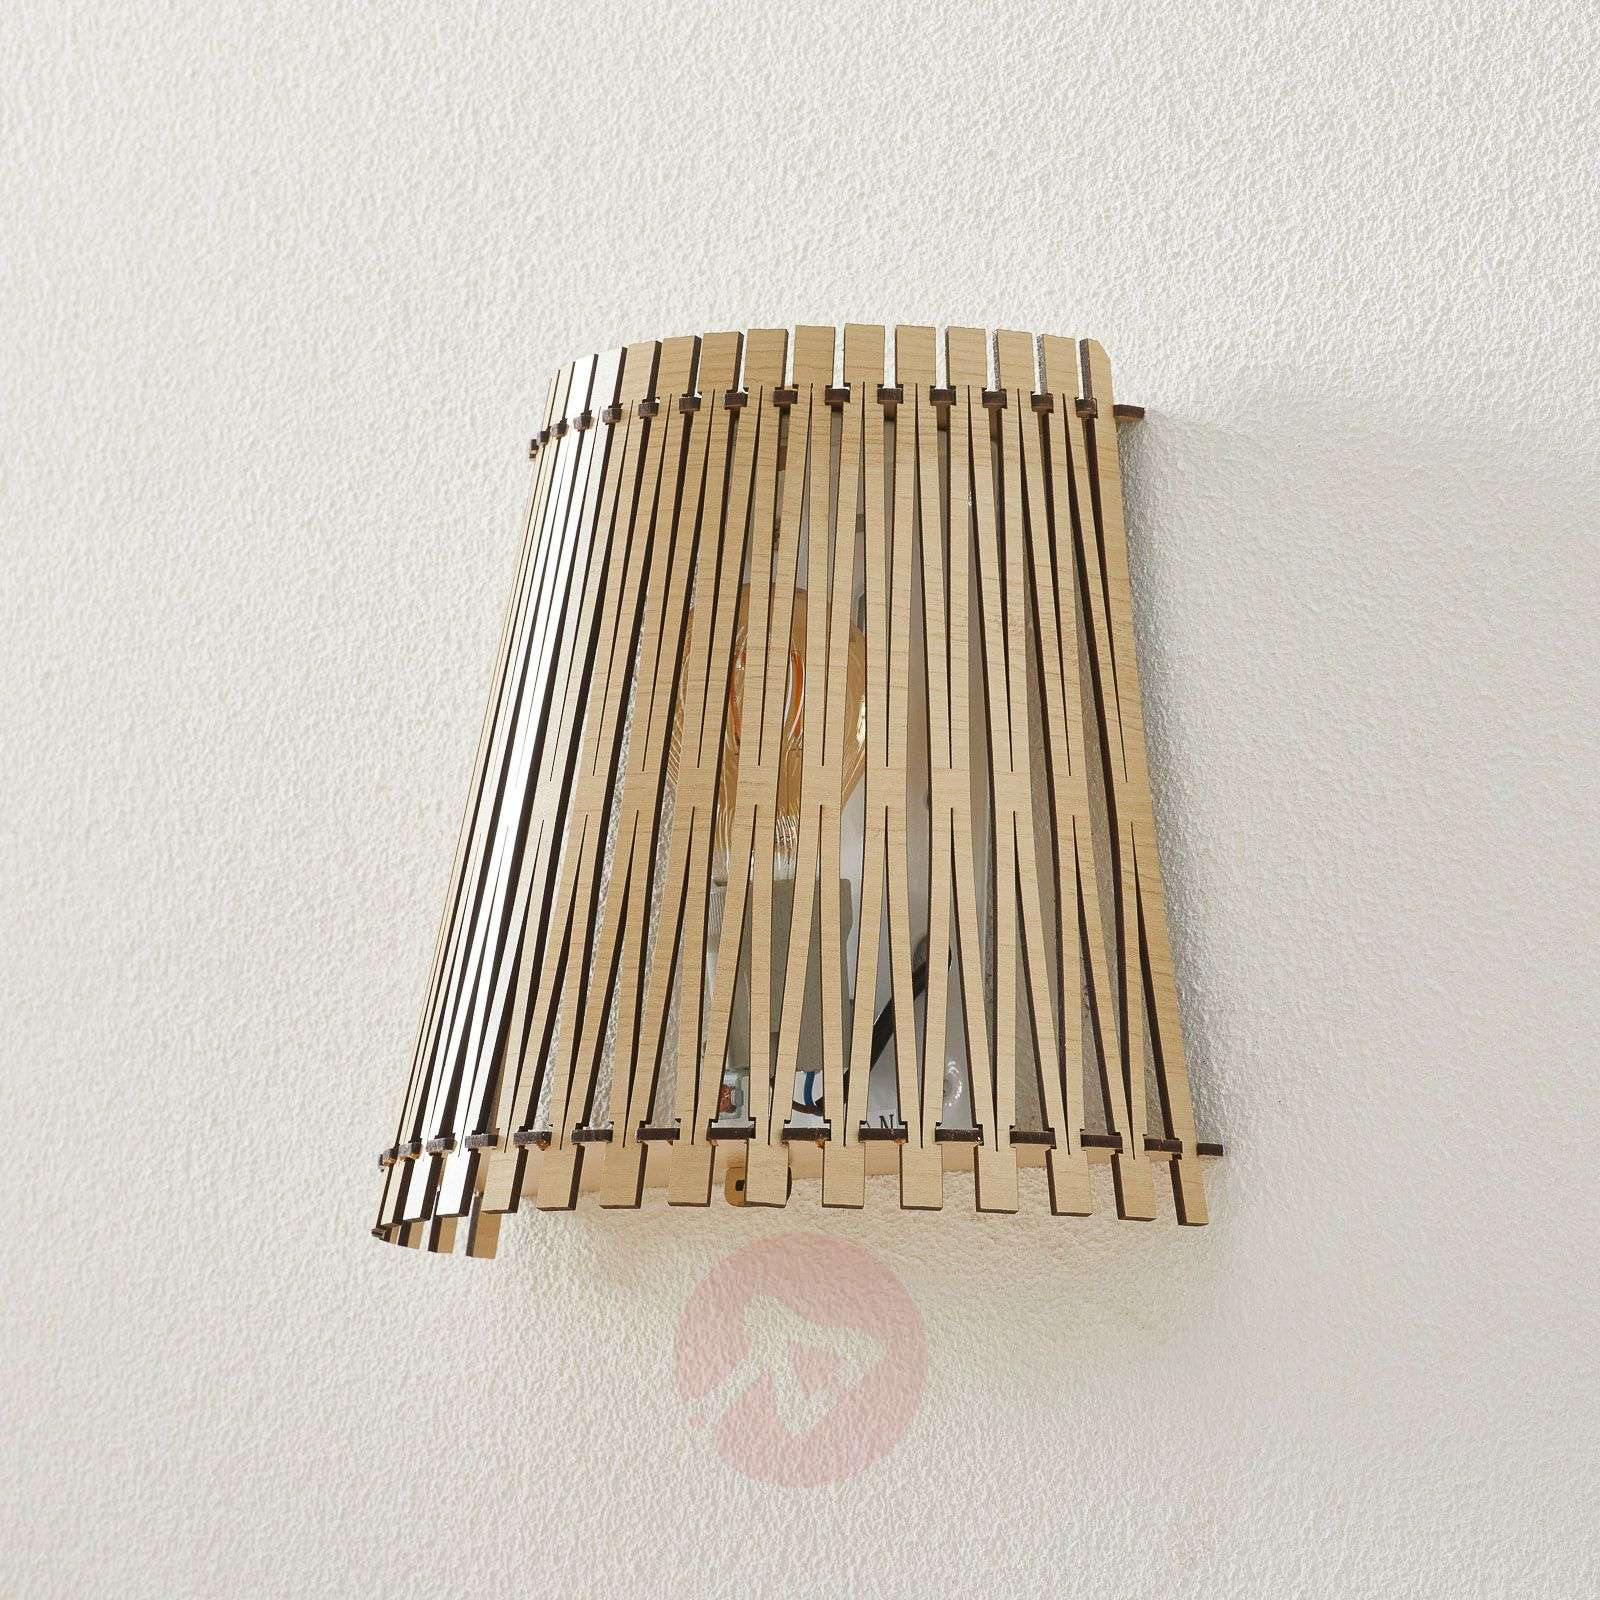 Effective wooden wall light Sendero-3031913-01